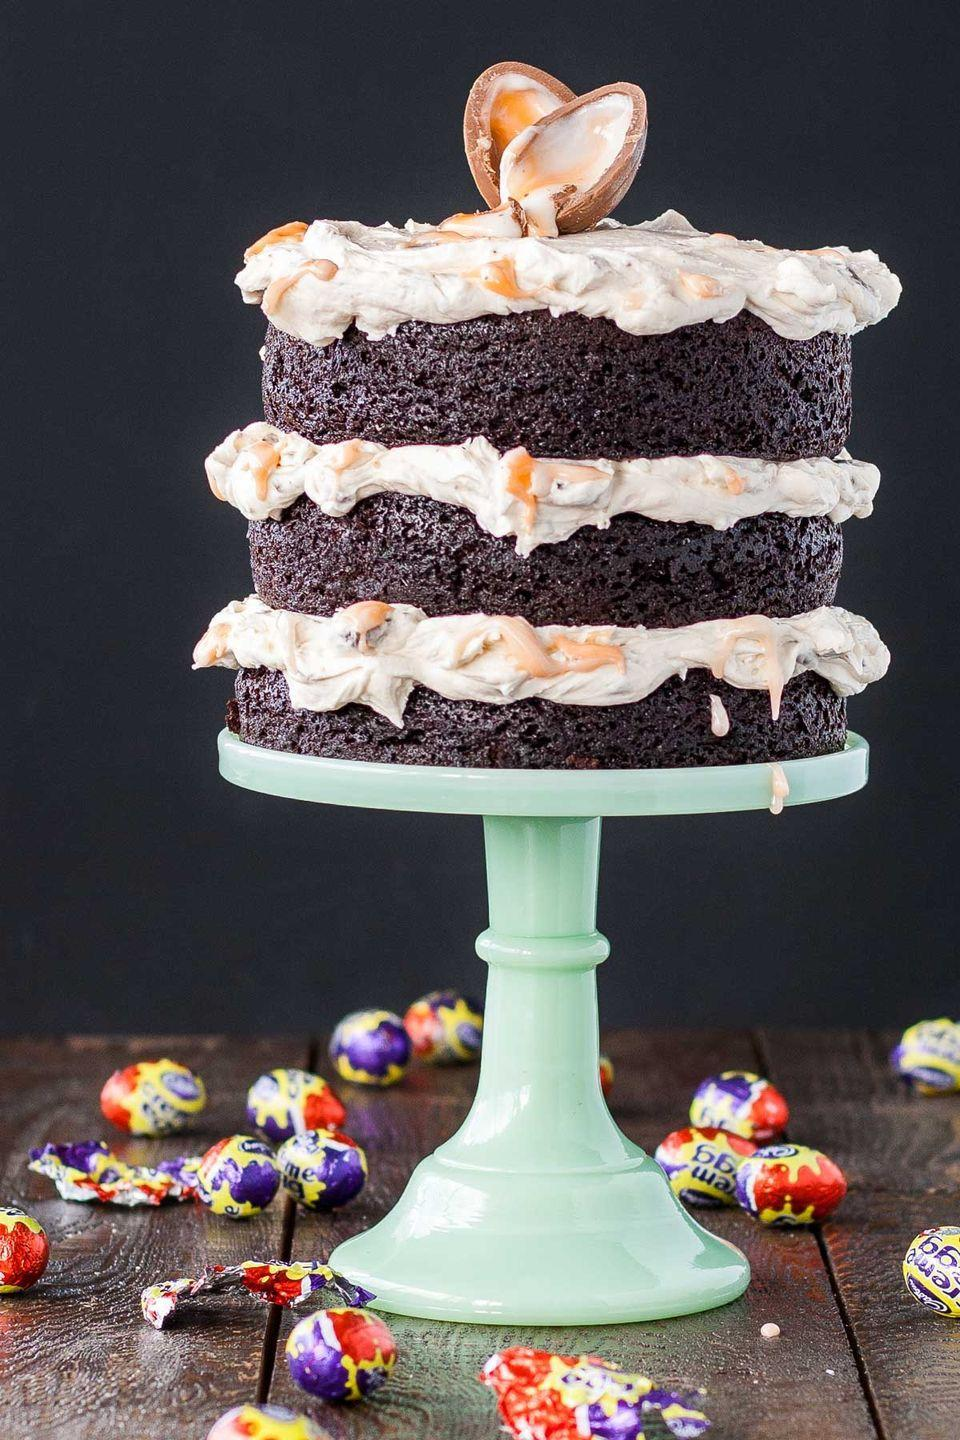 """<p>Slice a Cadbury Creme Egg in half to make the ultimate cake topper. The more white and yellow cream that oozes out, the better! </p><p><em><a href=""""https://livforcake.com/cadbury-creme-egg-cake/"""" rel=""""nofollow noopener"""" target=""""_blank"""" data-ylk=""""slk:Get the recipe from Liv for Cake »"""" class=""""link rapid-noclick-resp"""">Get the recipe from Liv for Cake »</a></em> </p>"""